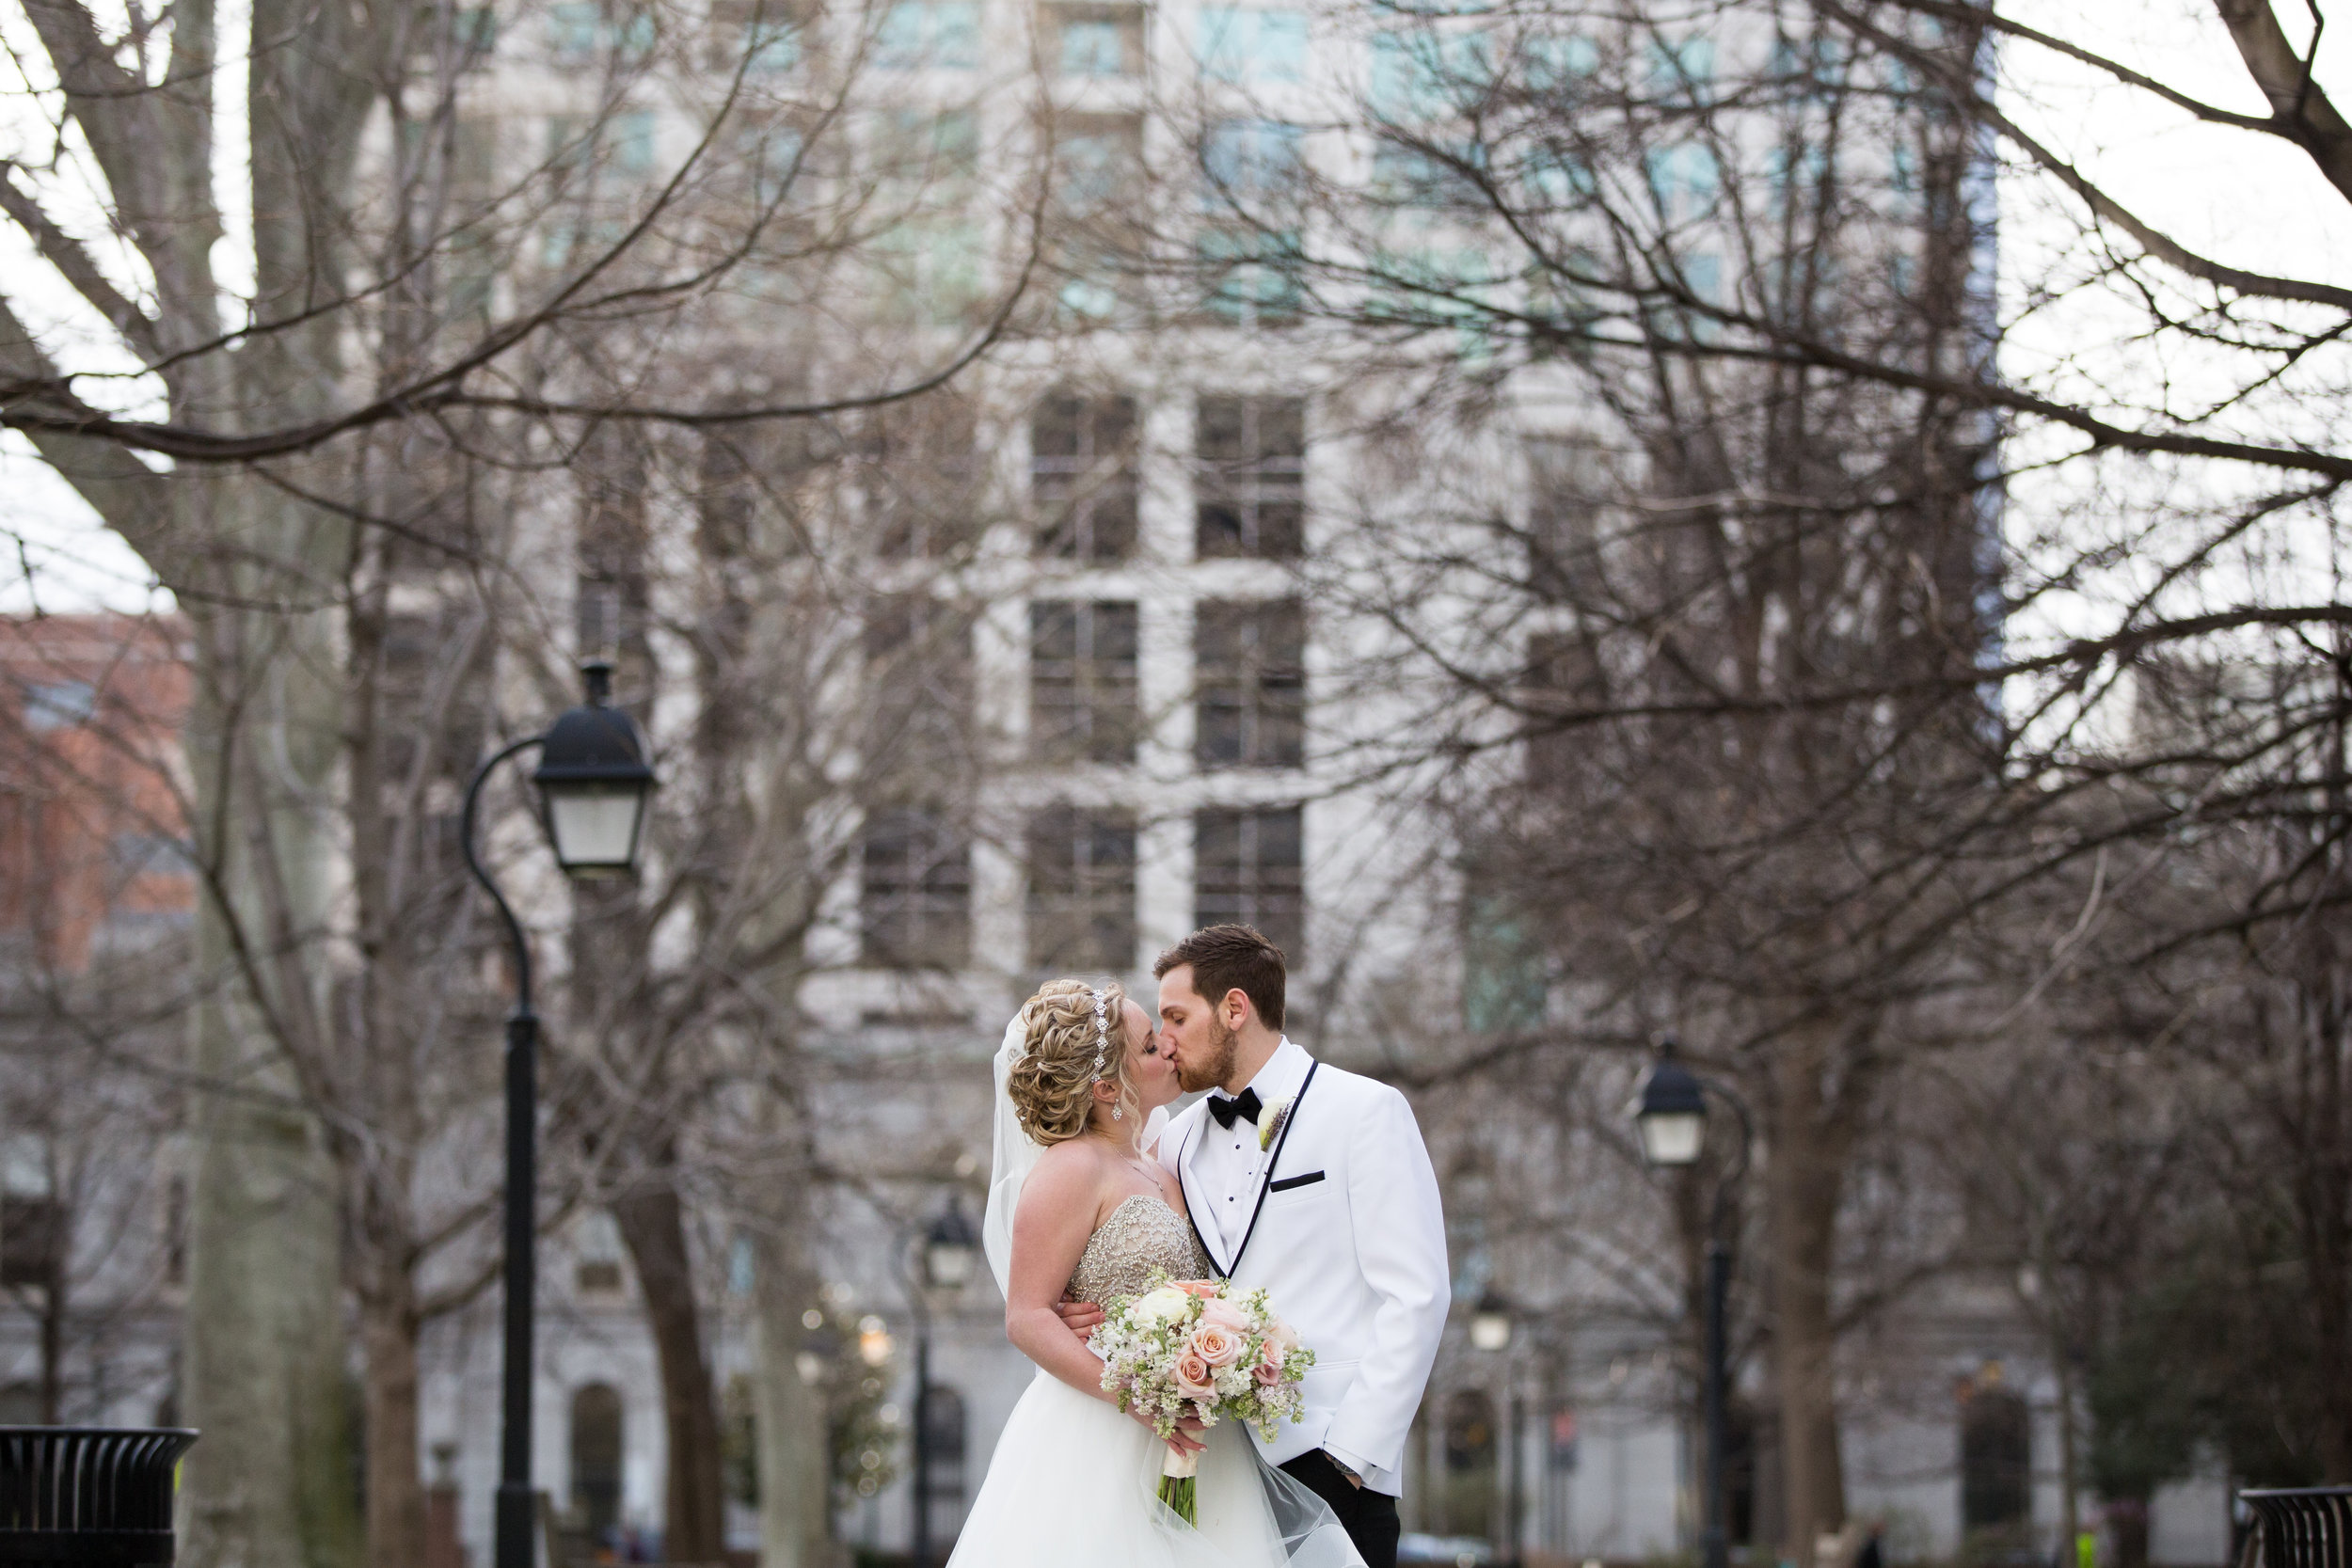 Deana and Zane are MARRIED and loving every minute of it in Washington Square Park in Philadelphia.